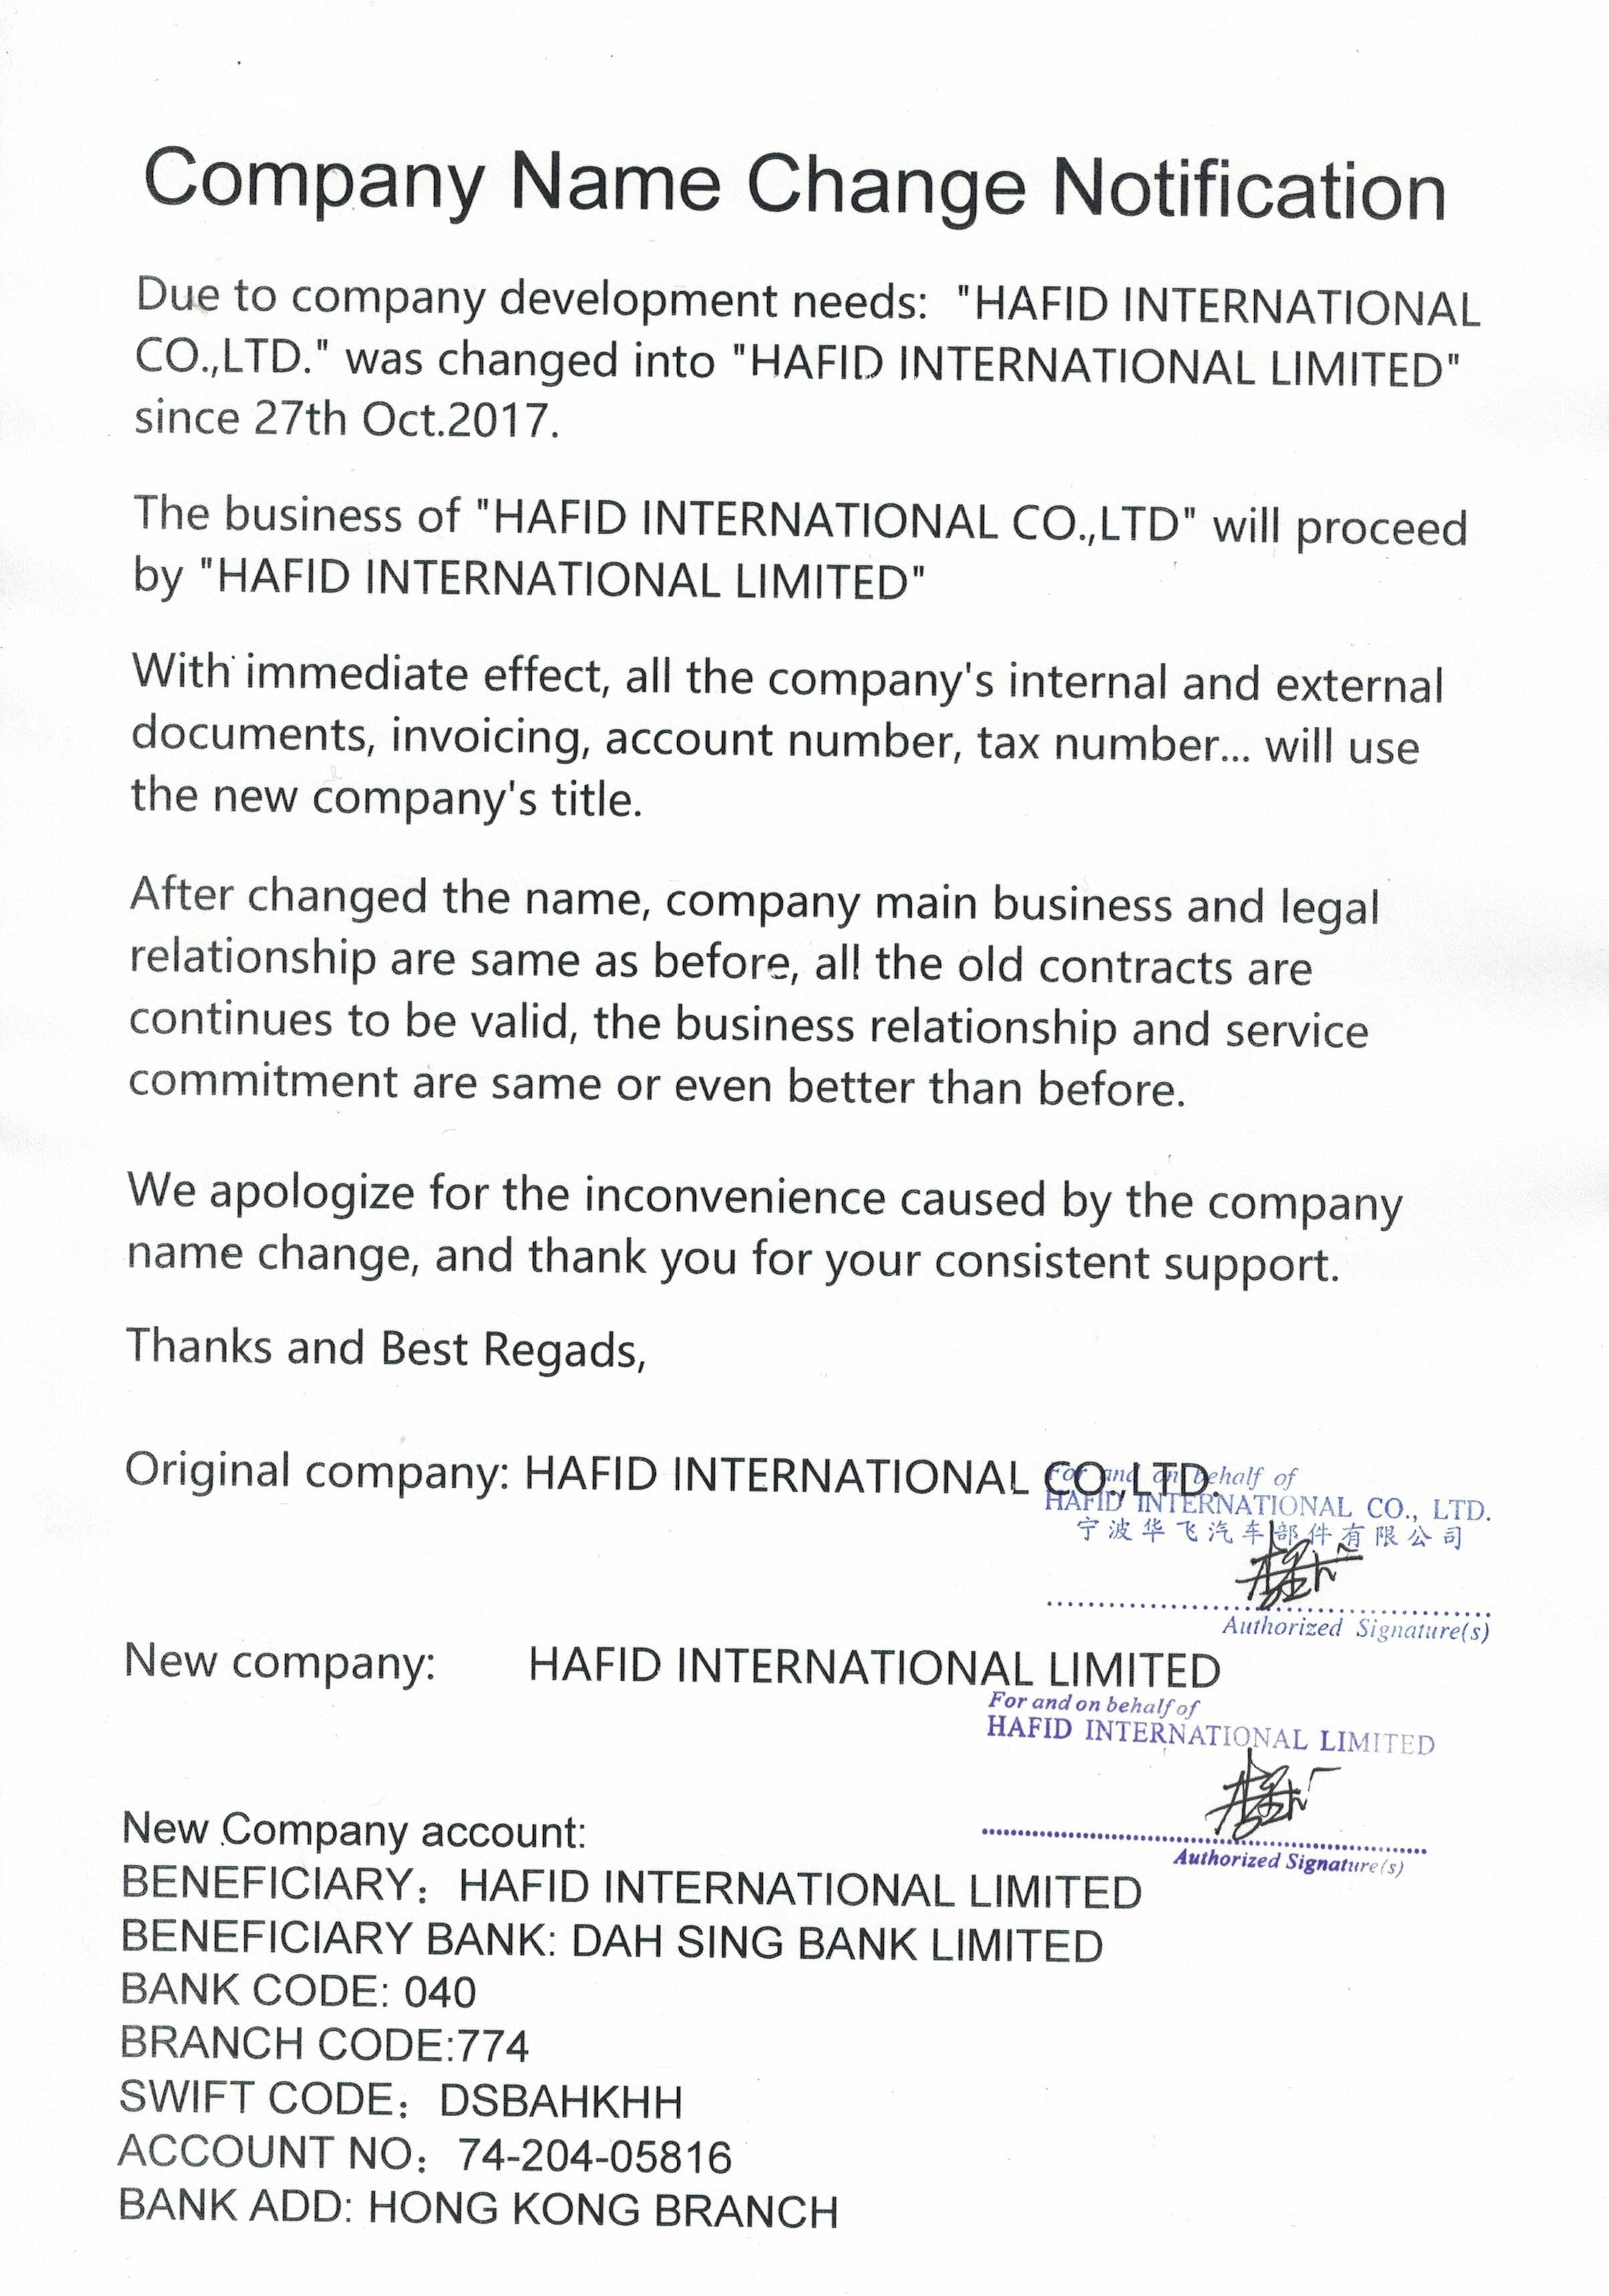 HAFID Company Name Change Notification